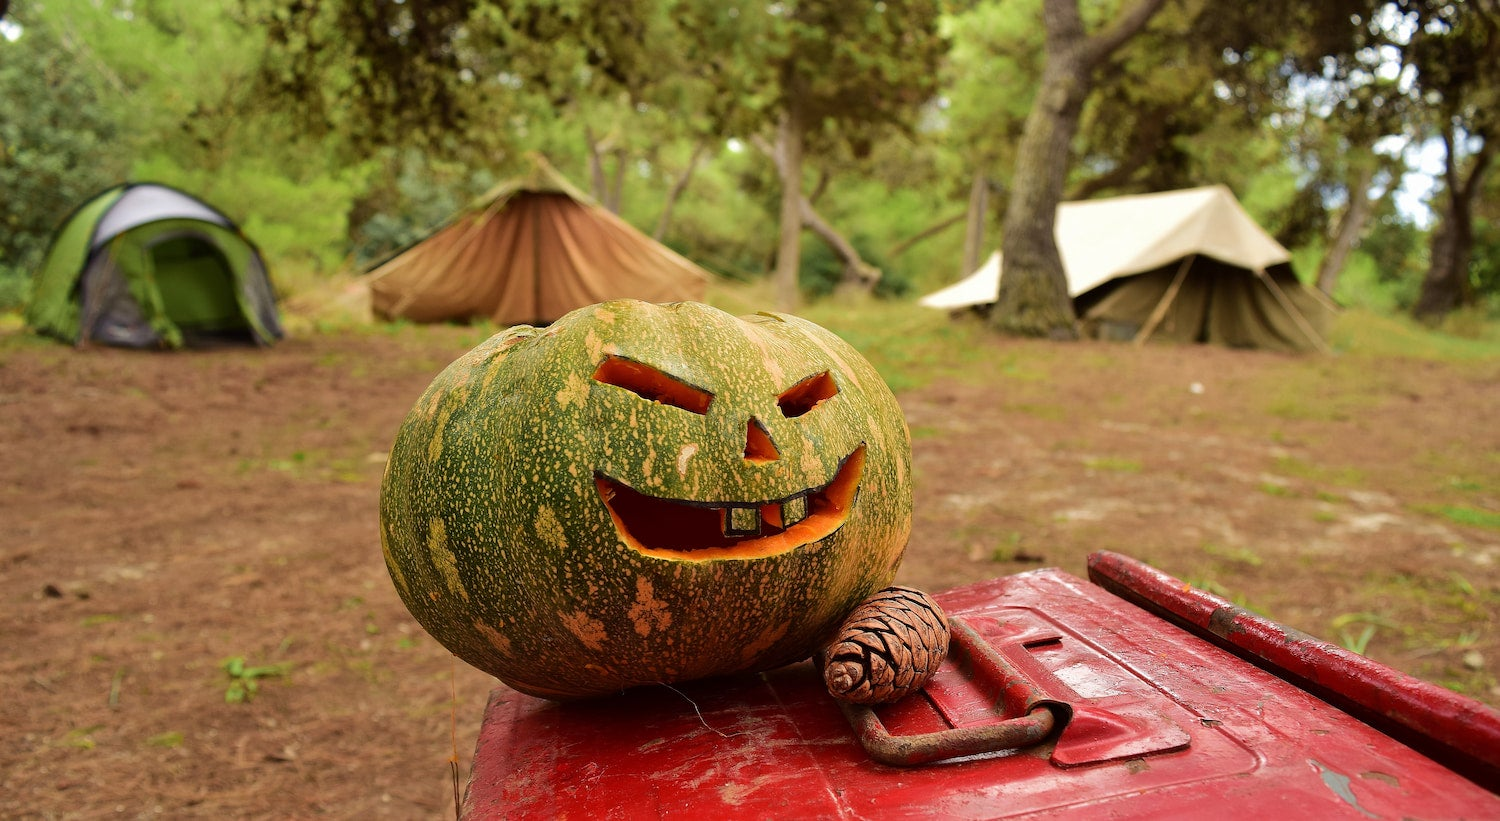 Jack o' lantern carved in front of tent at a campsite for halloween camping.